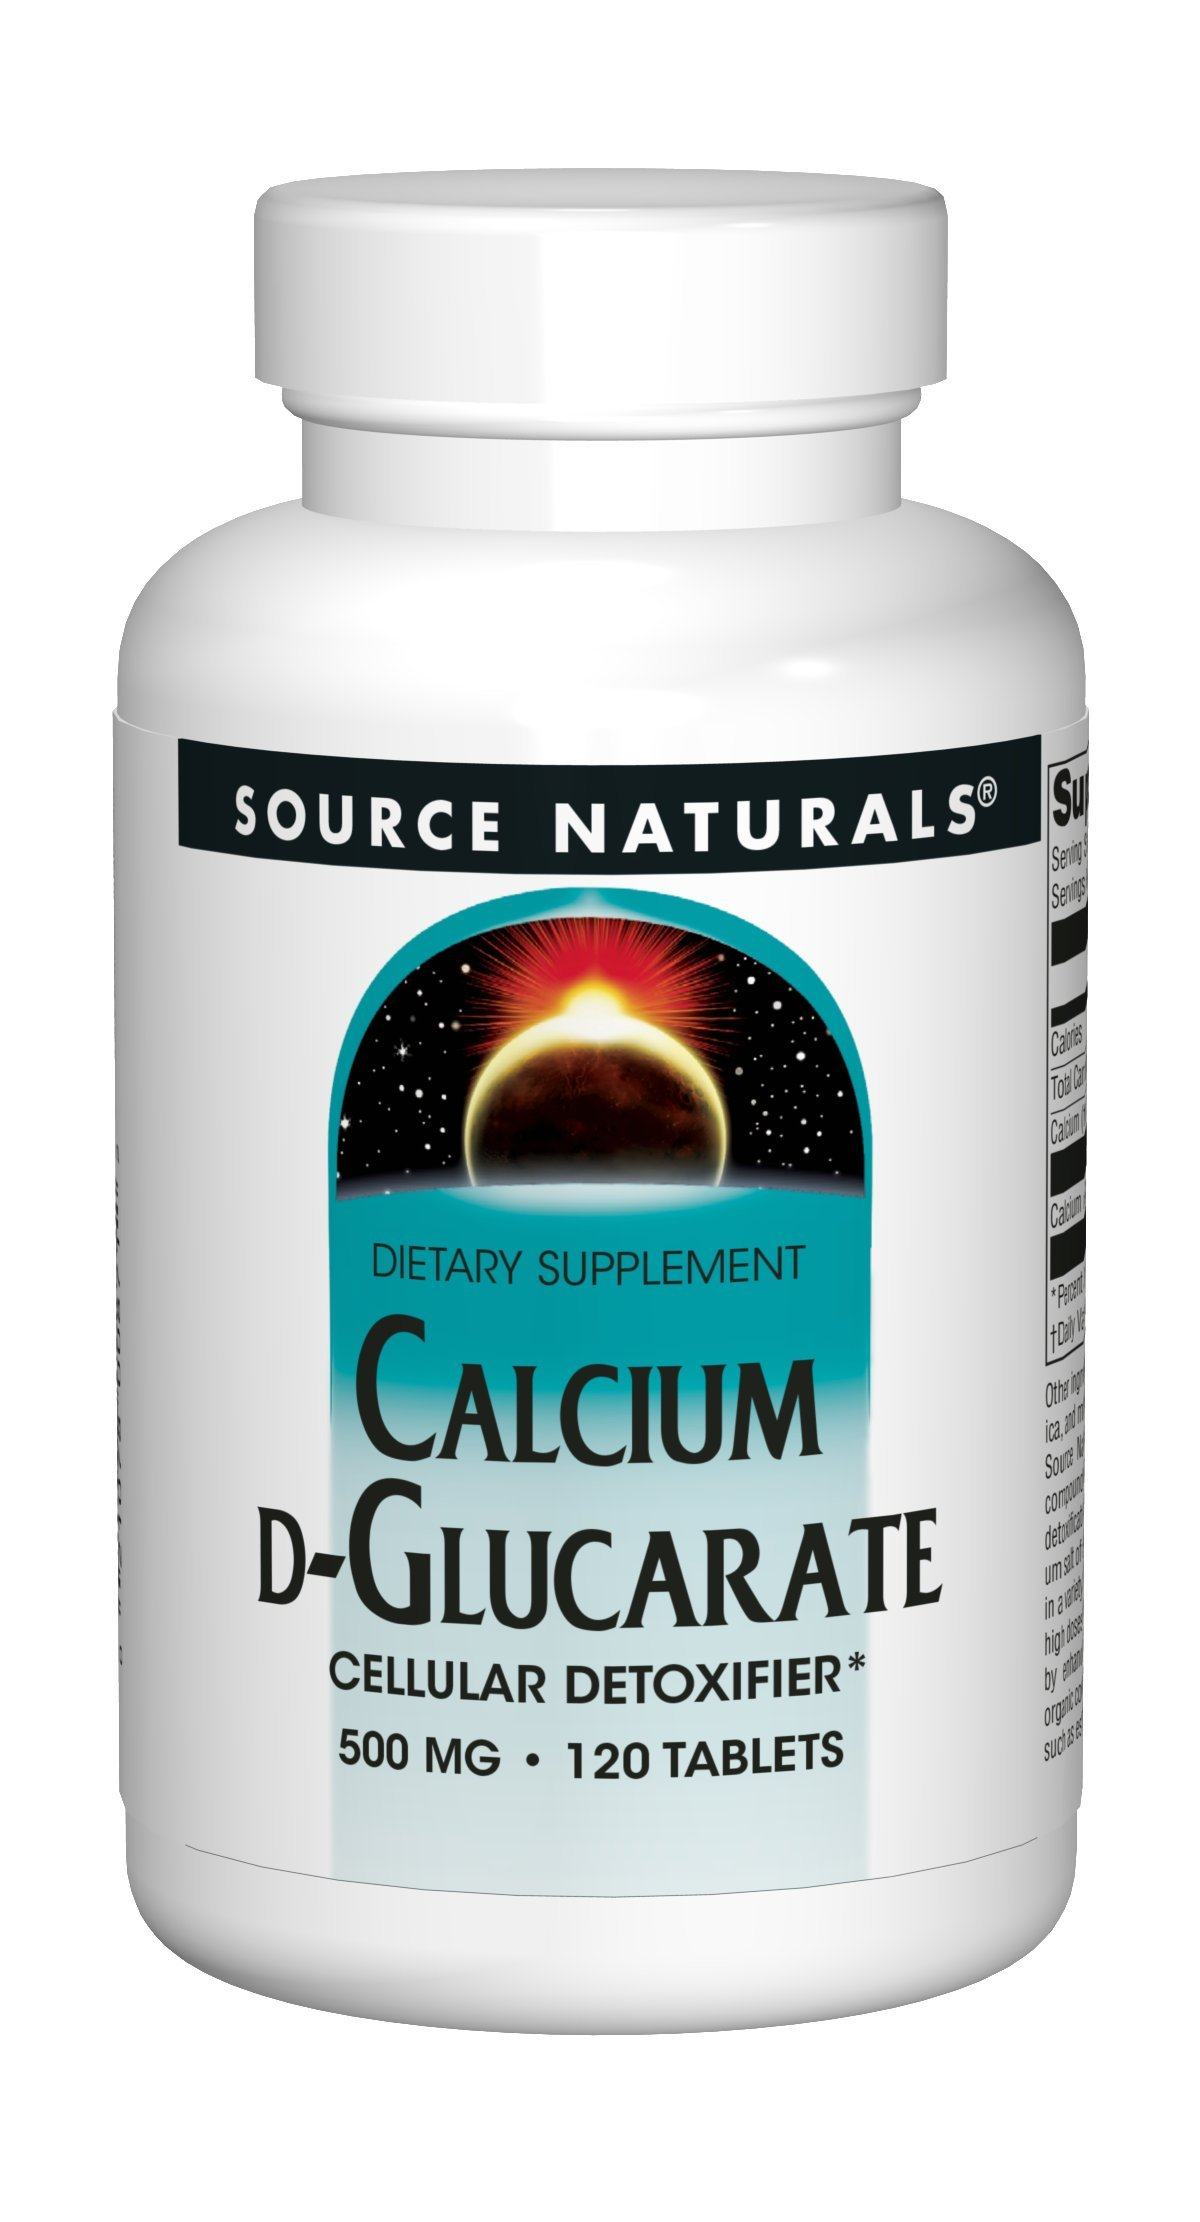 Source Naturals Calcium D-Glucarate 500mg - 120 Tablets